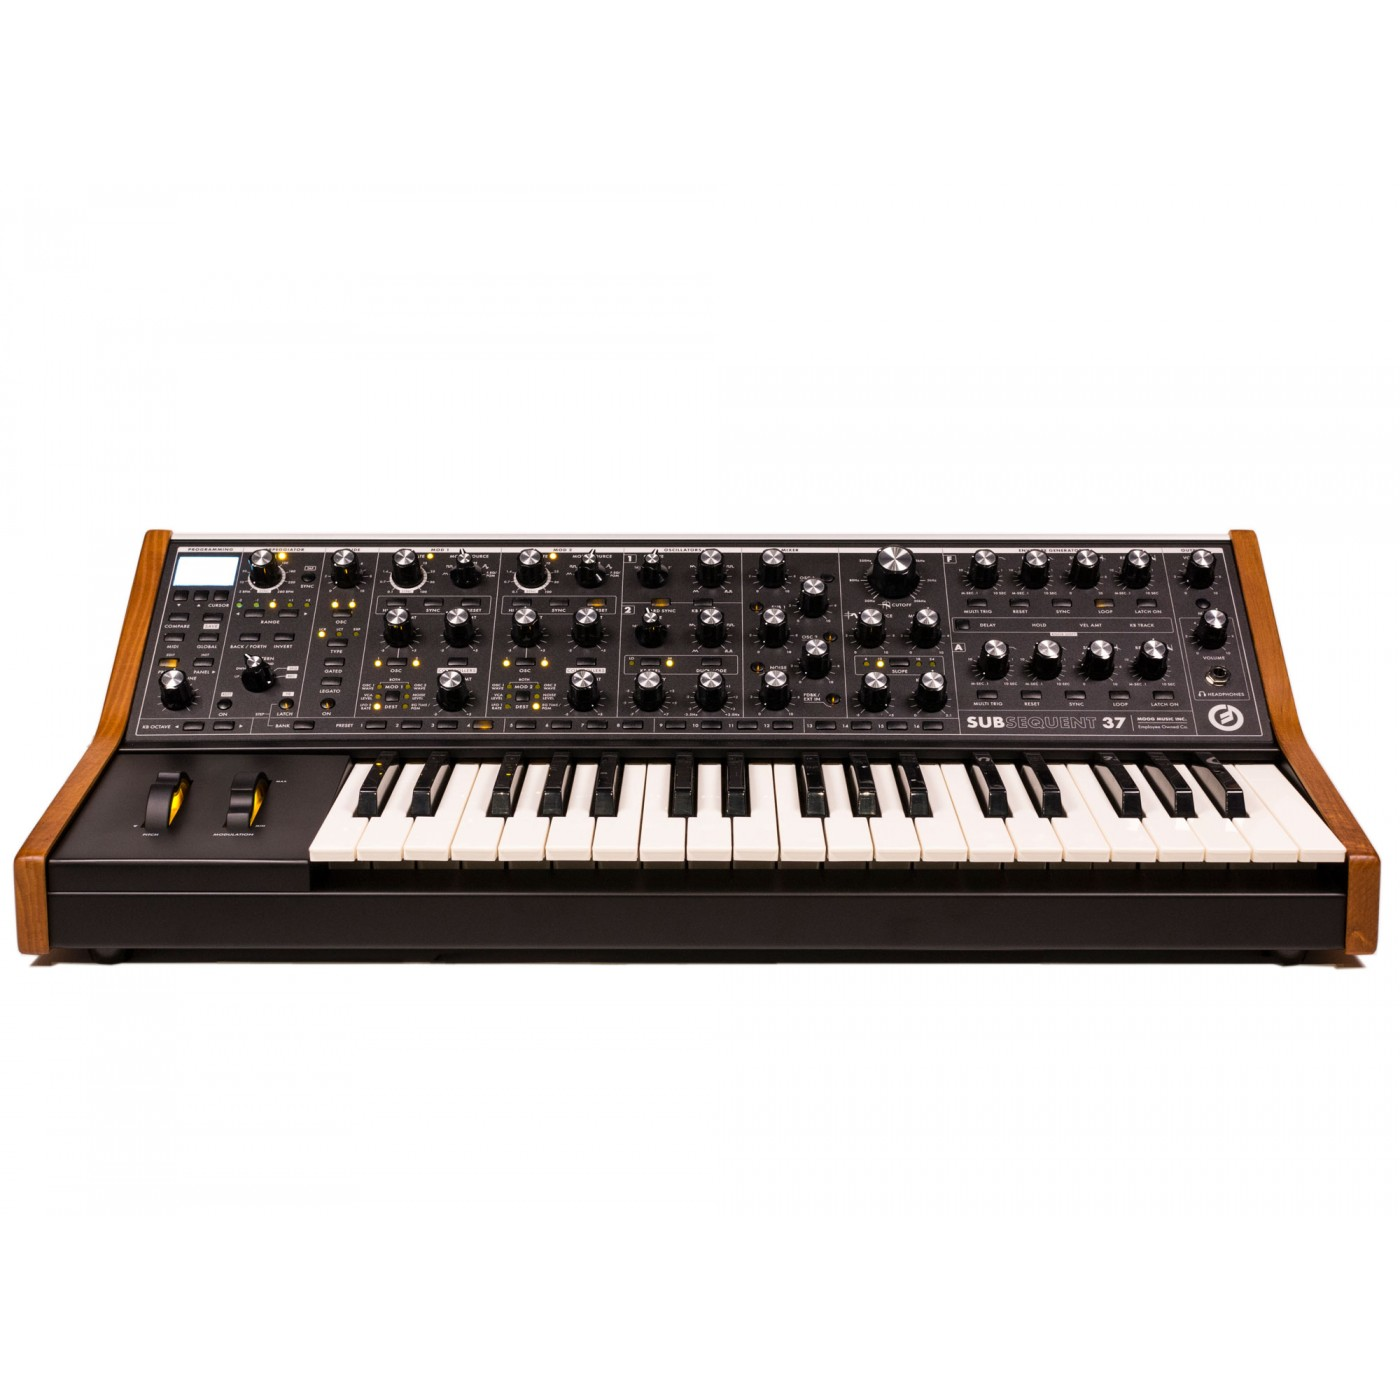 Moog SUBSEQUENT 37 | Rage Audio